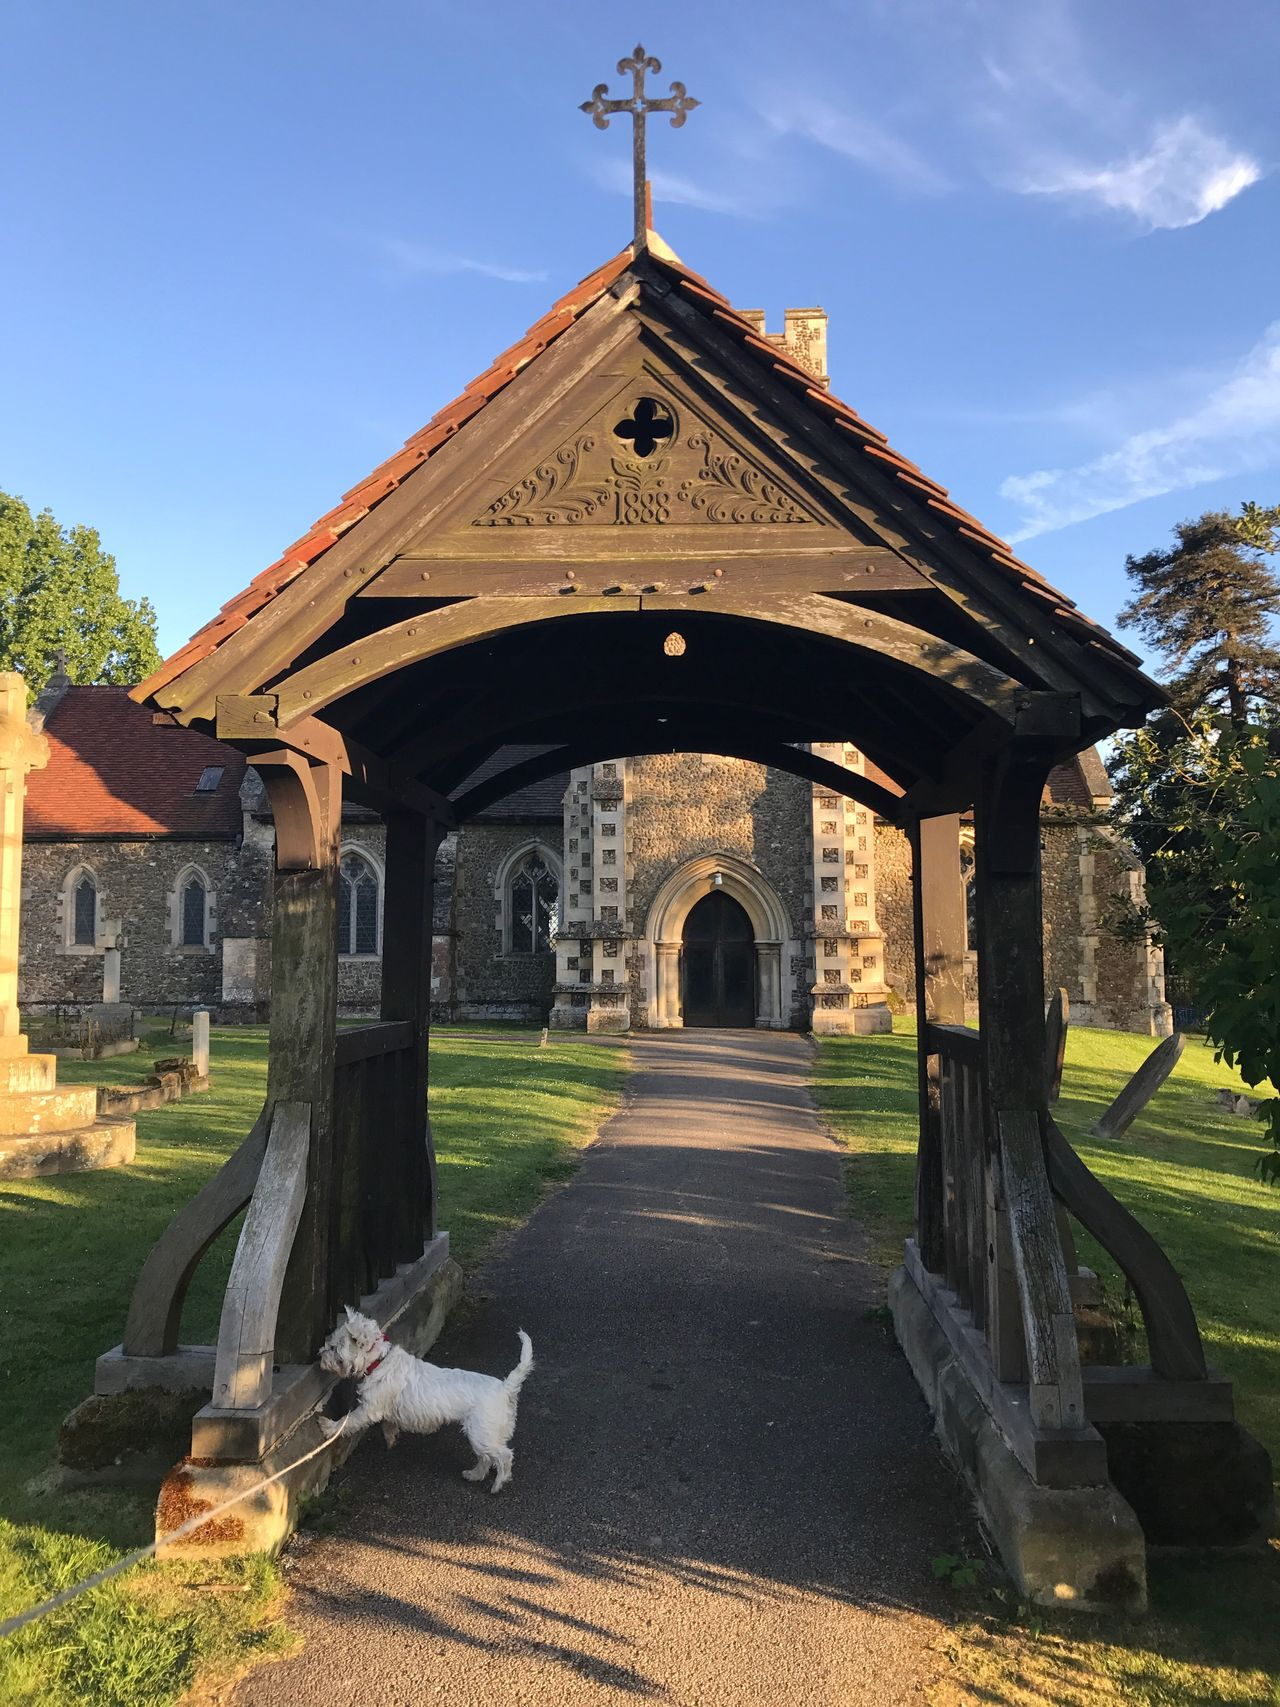 Religion Architecture Built Structure Spirituality Day History Cross Sky No People Place Of Worship Outdoors Building Exterior Grass Westie Photobombed Dog